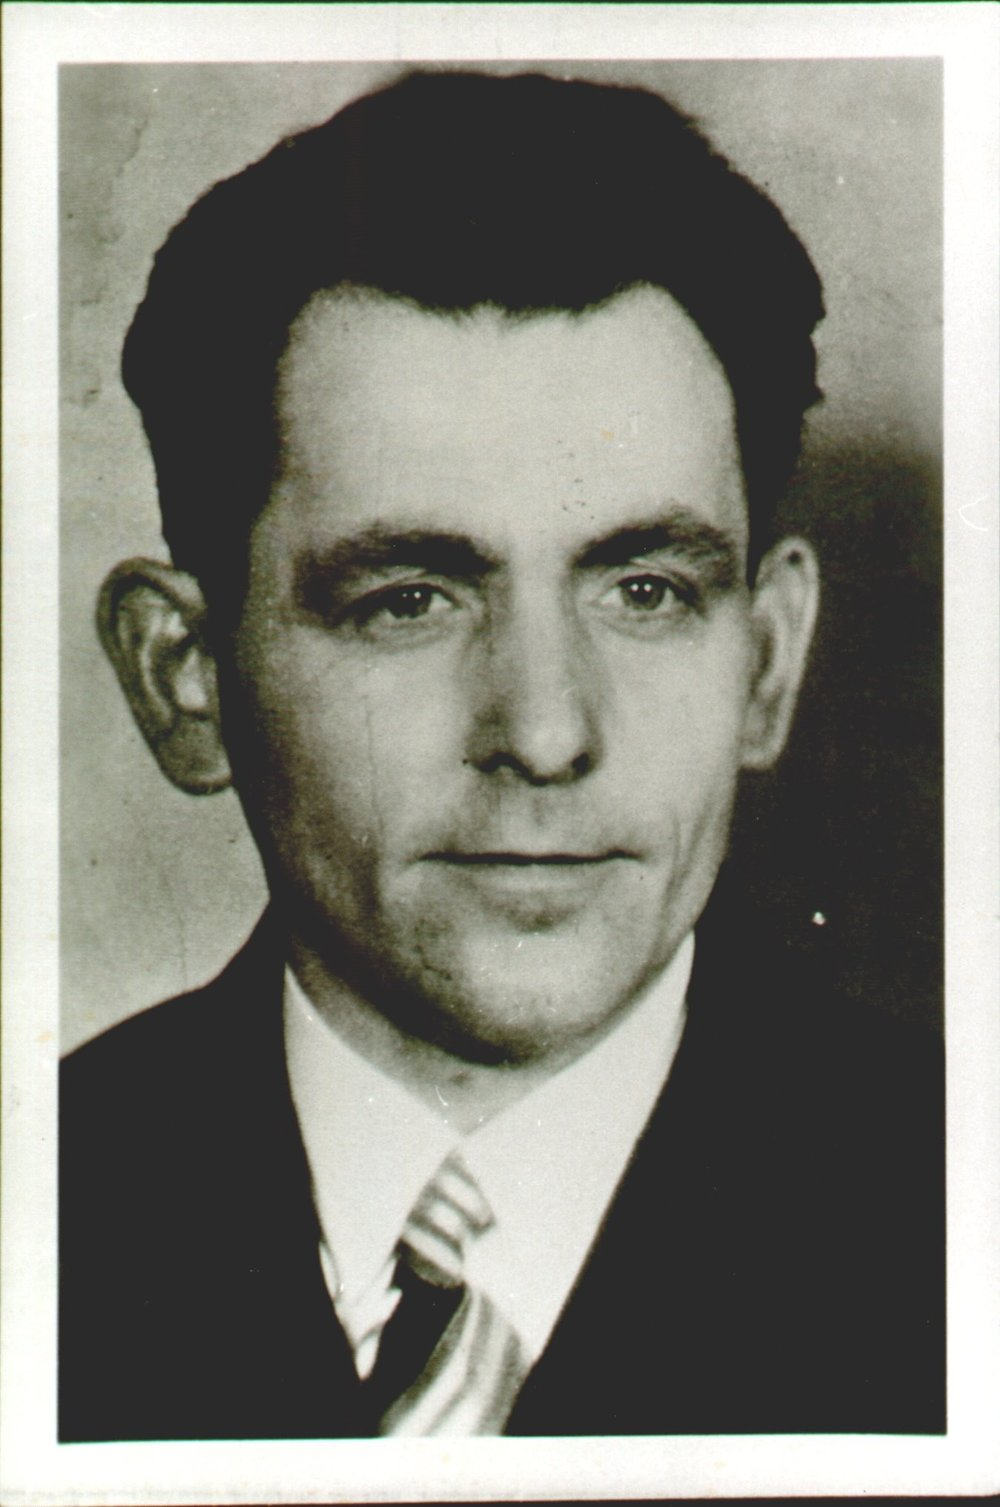 Georg Elser, the man who came closest to killing Hitler